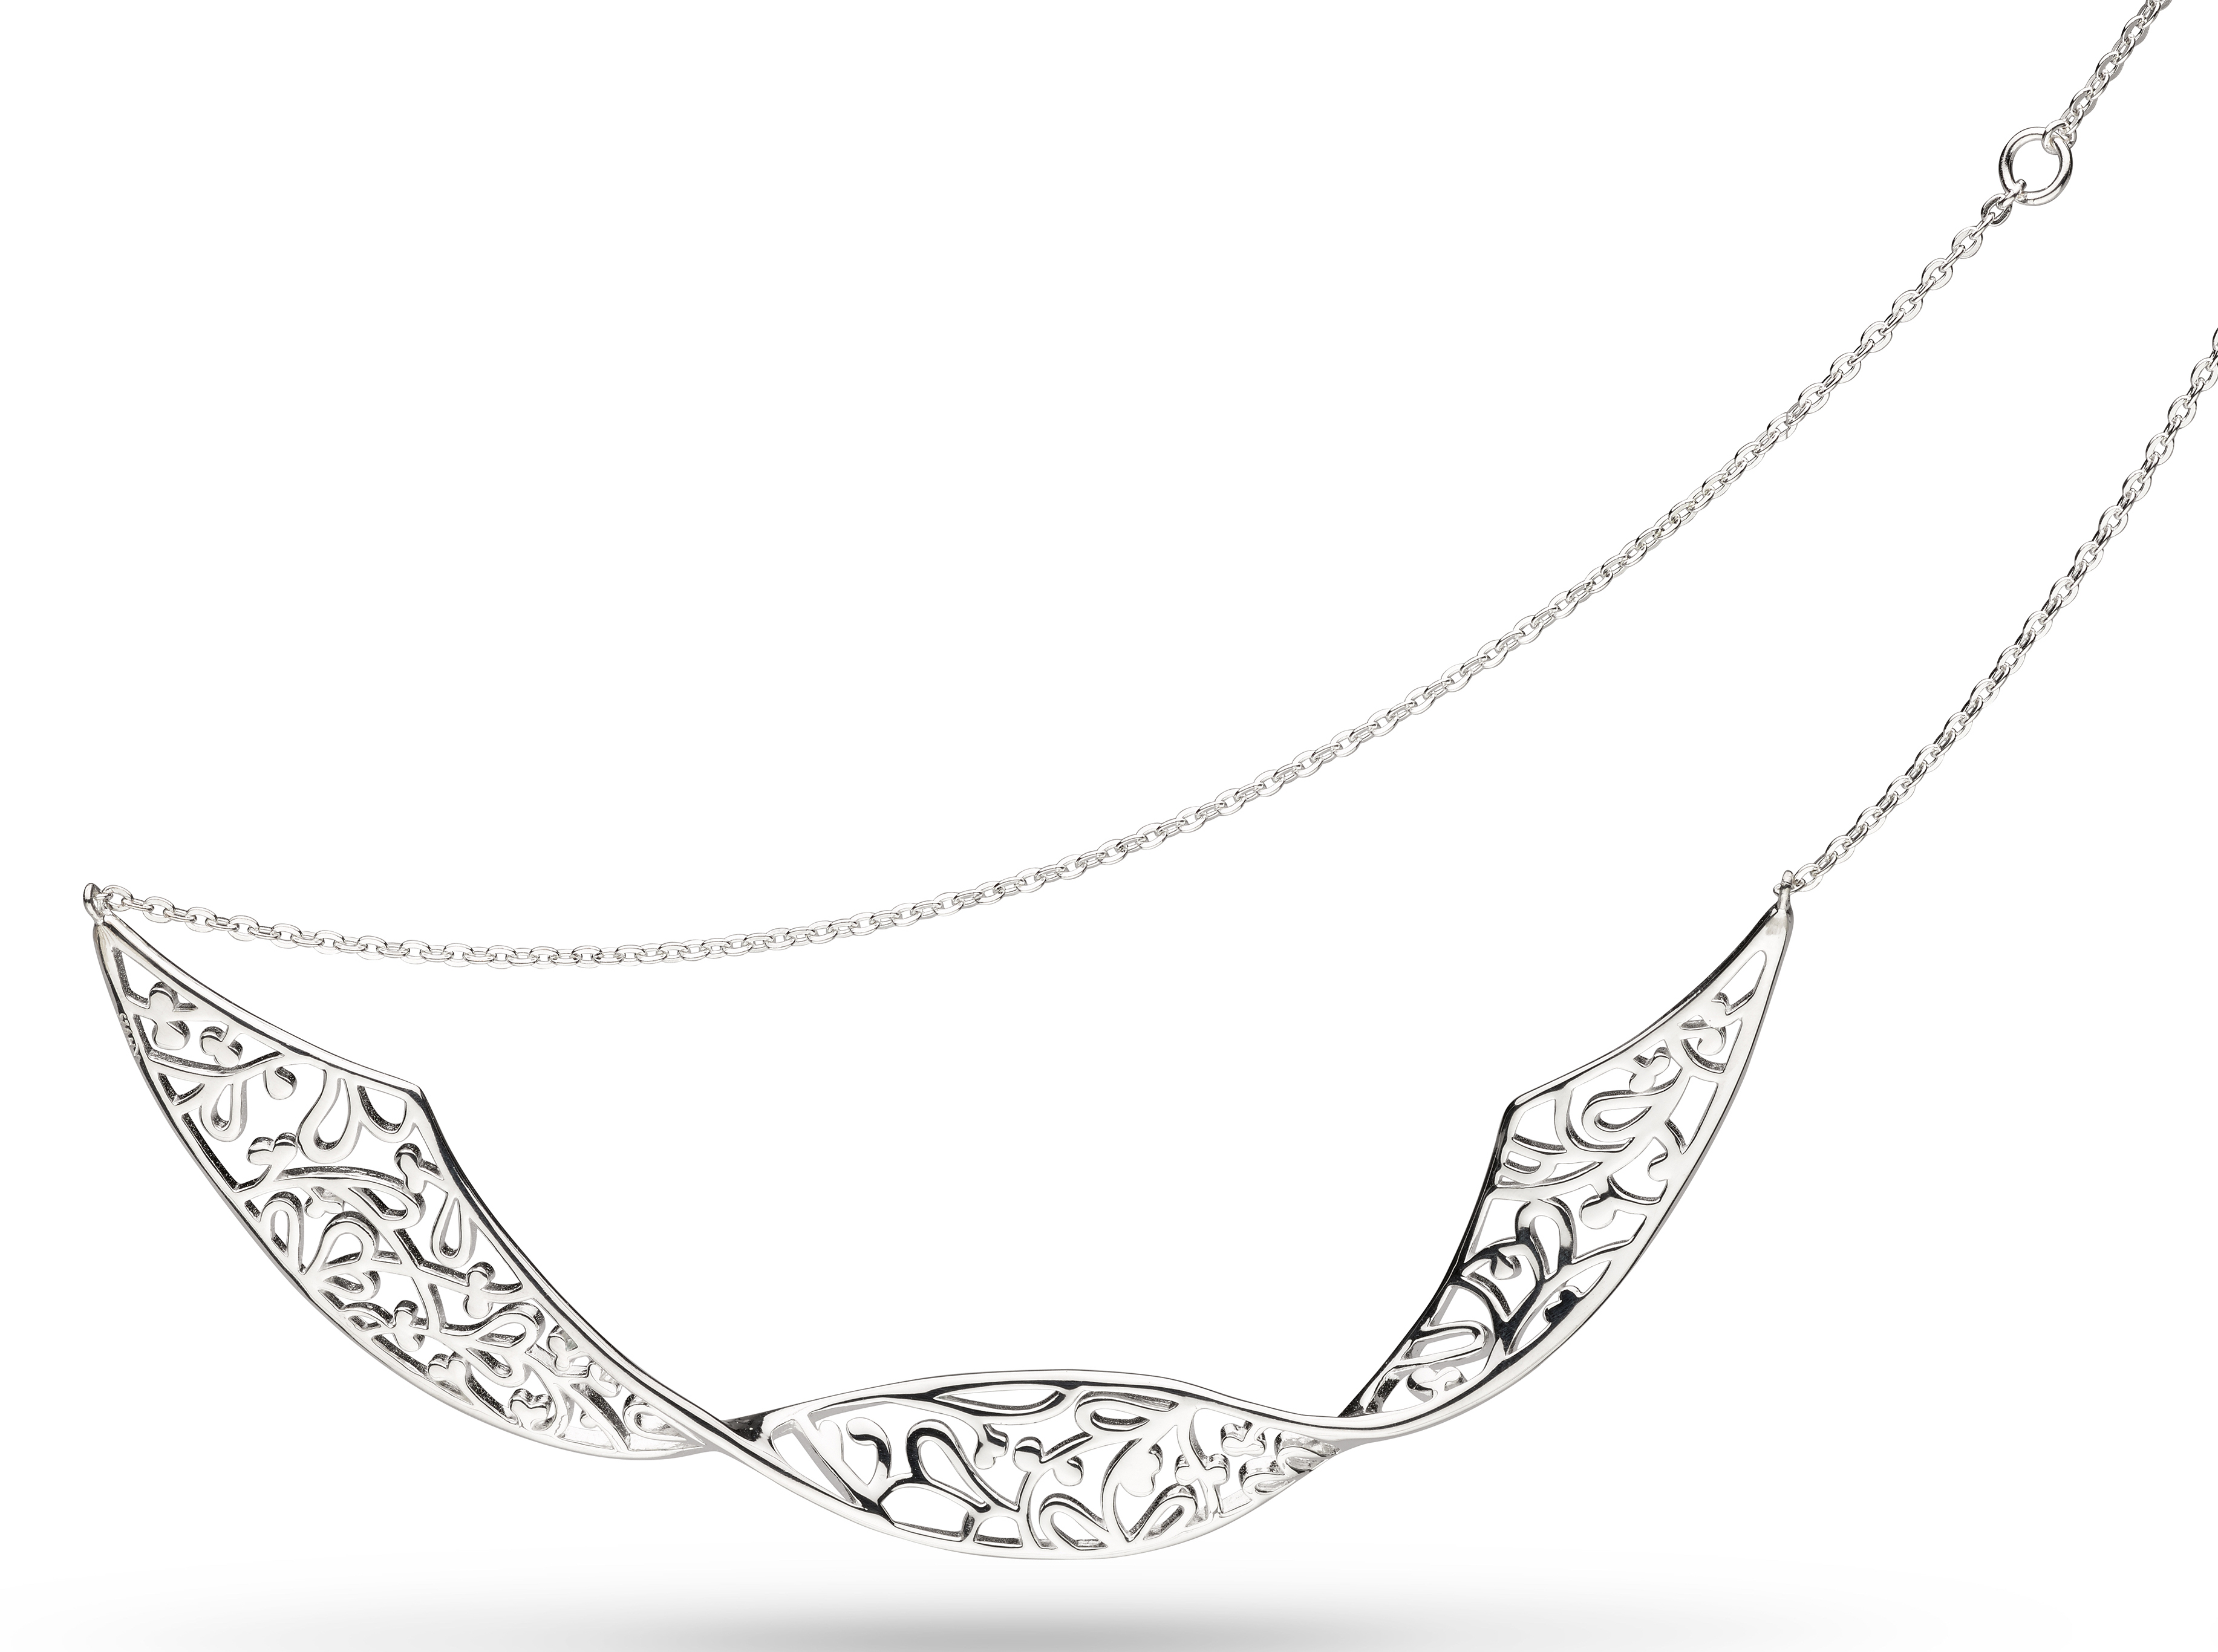 Kit Heath Flourish necklace | JCK On Your Market